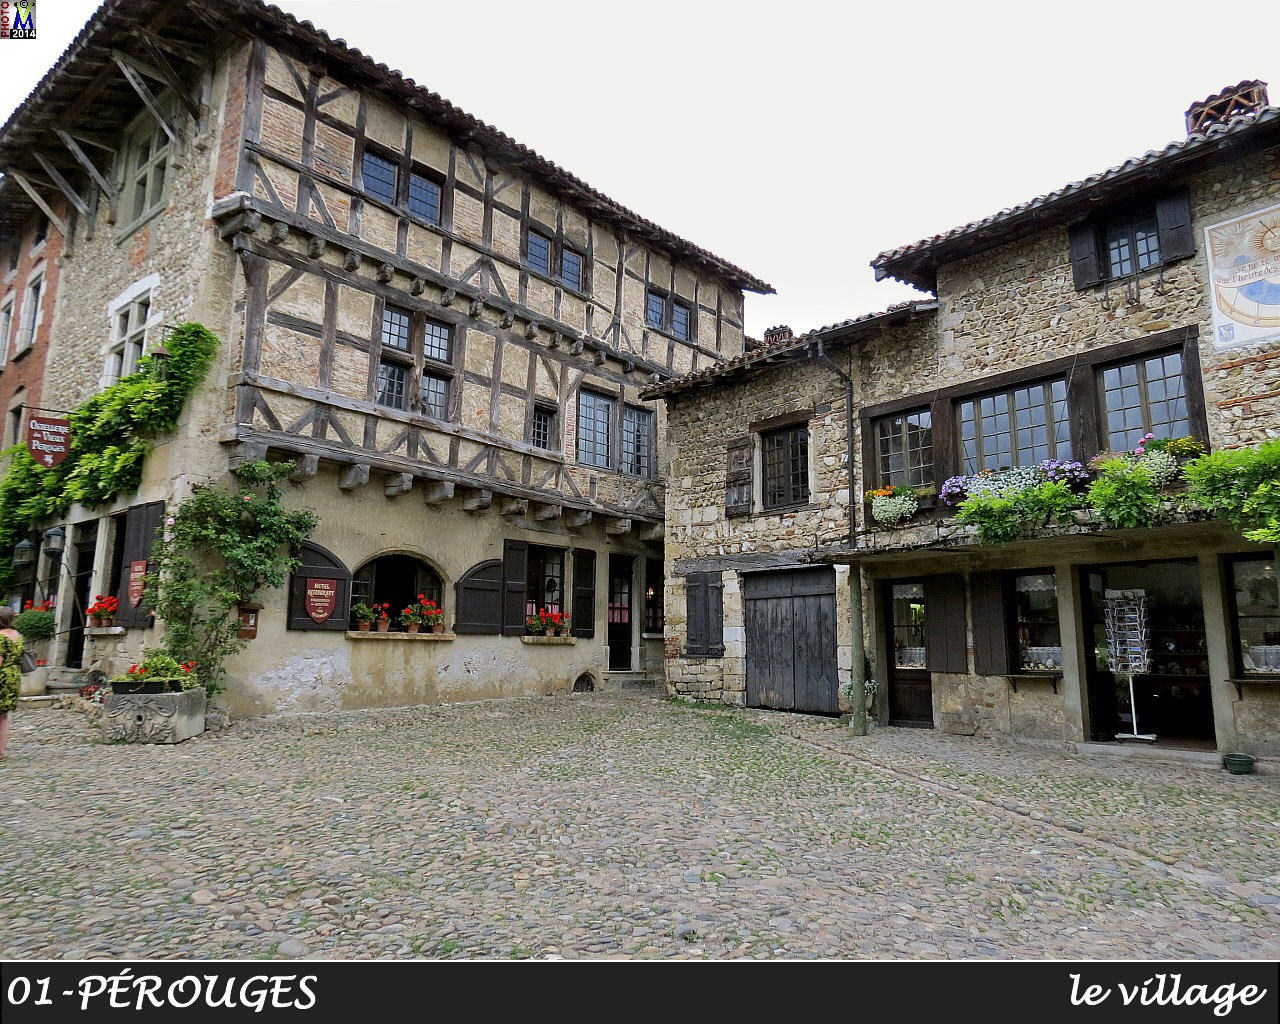 01PEROUGES_village_136.jpg